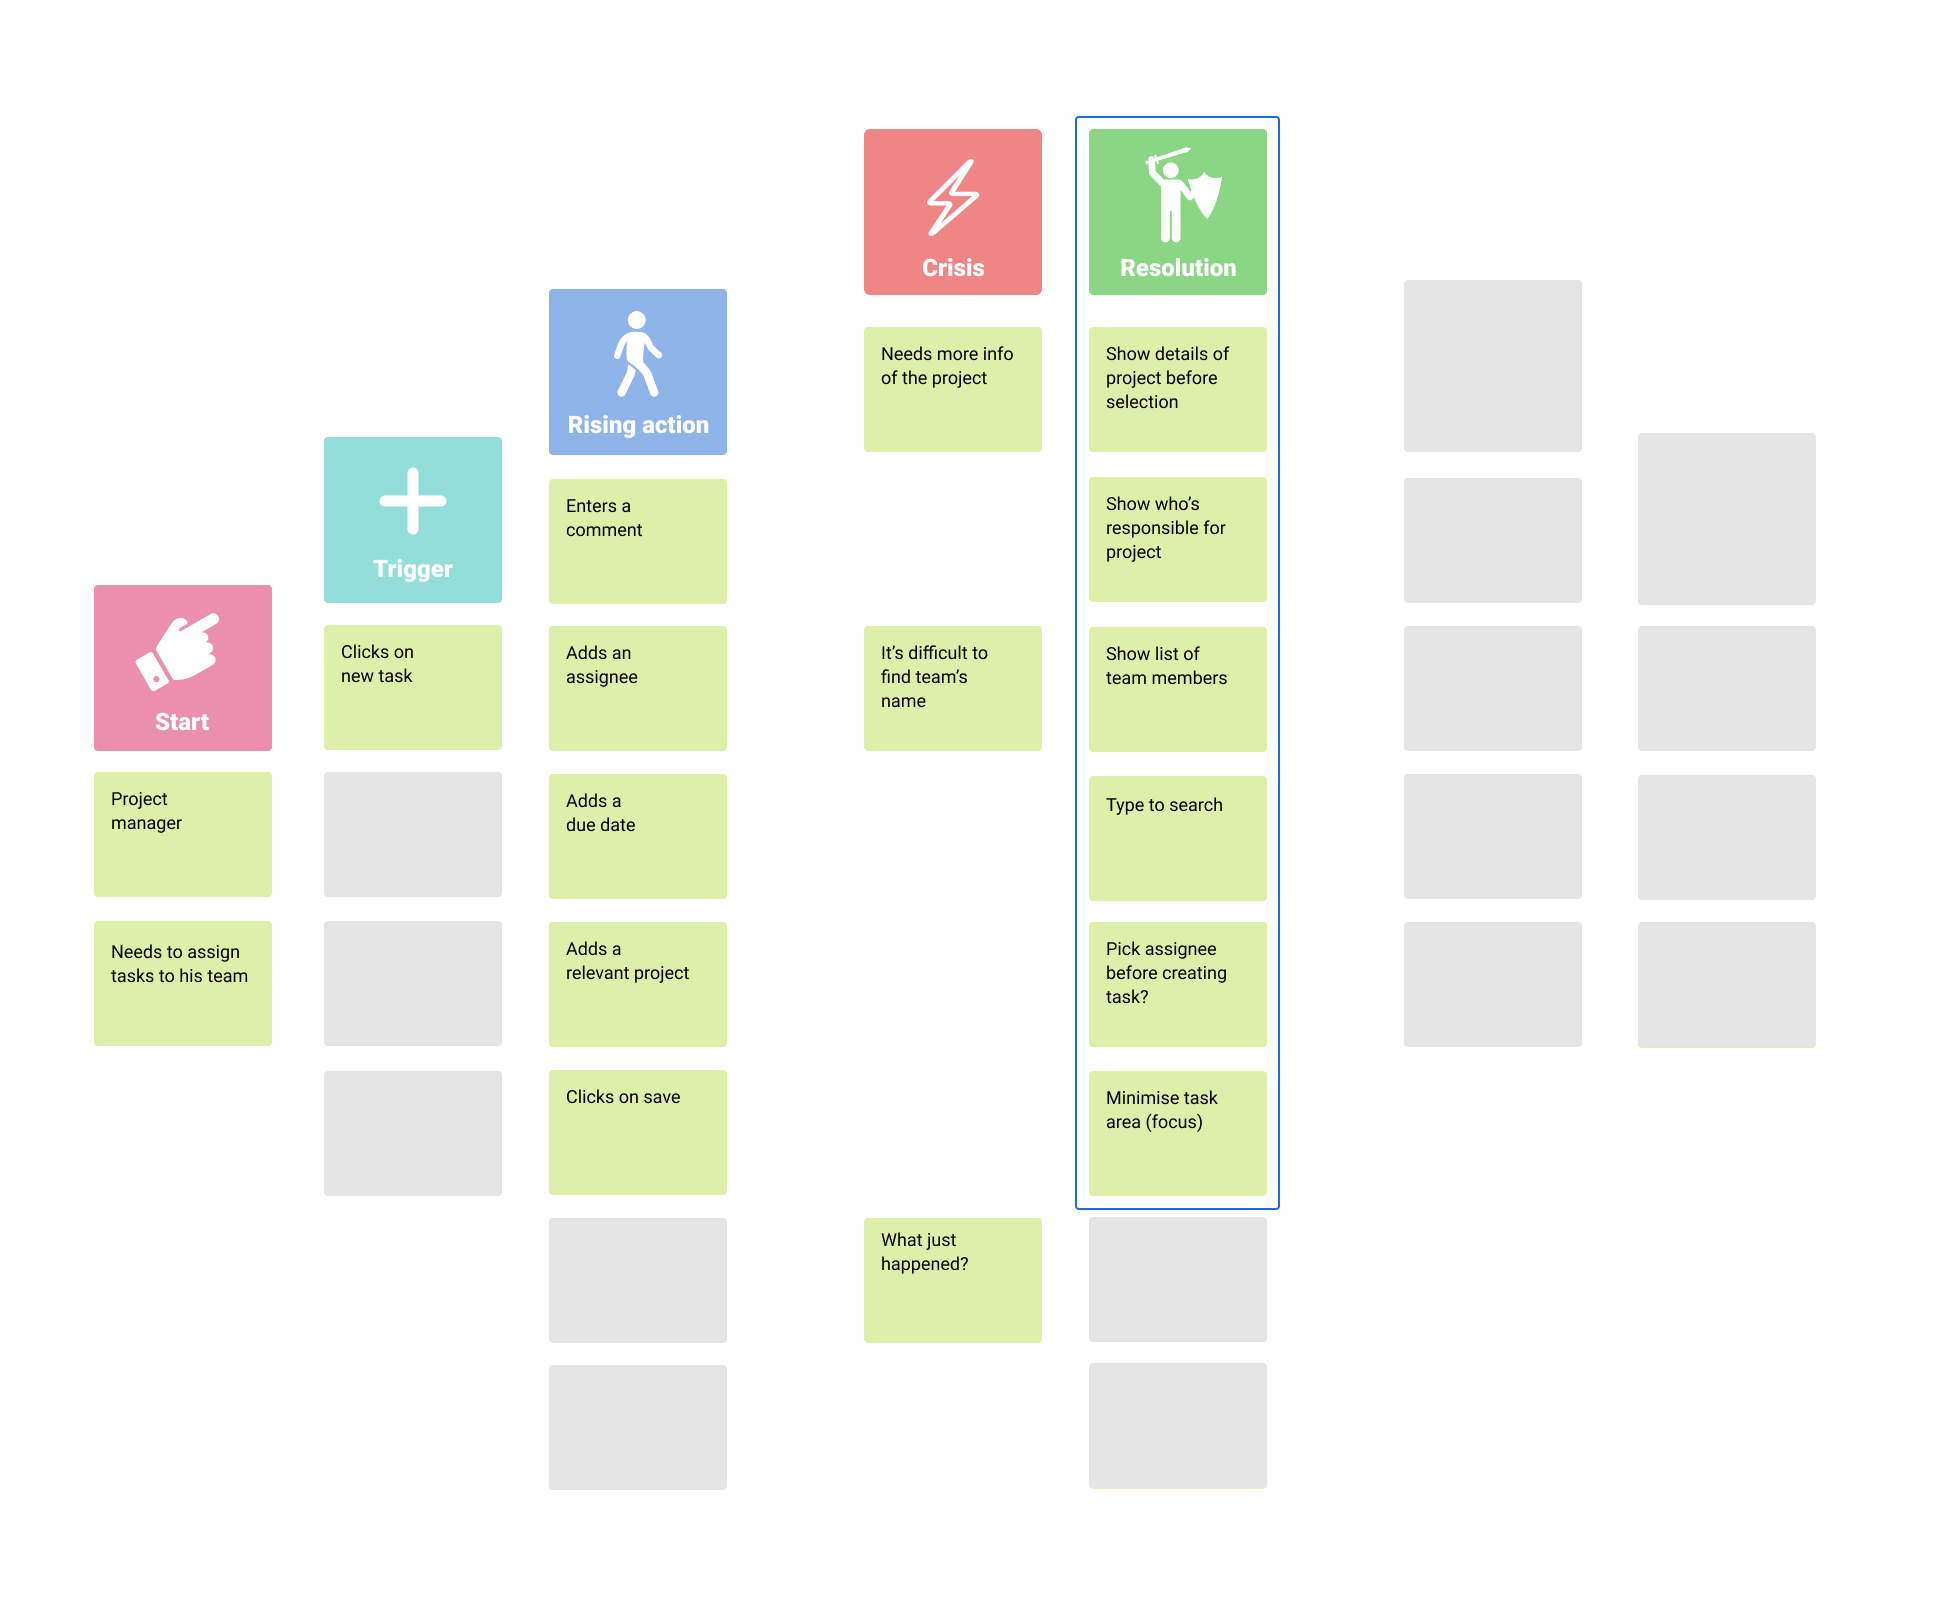 Resolution section in Storymapping process